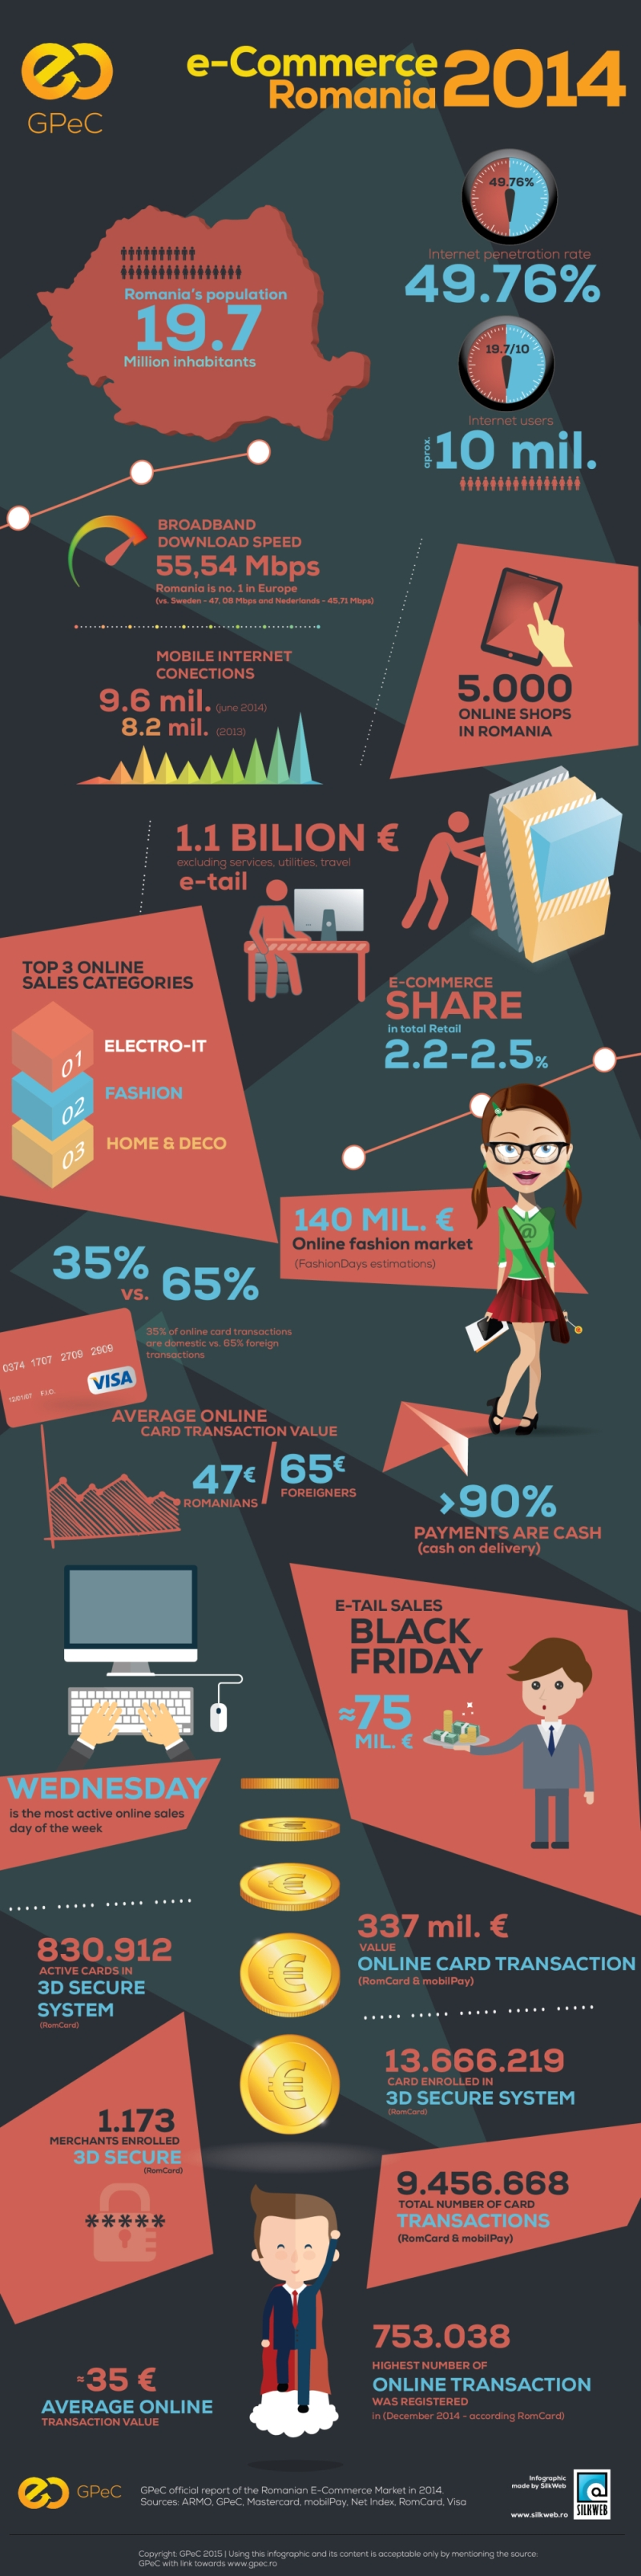 Ecommerce in Romania statistics